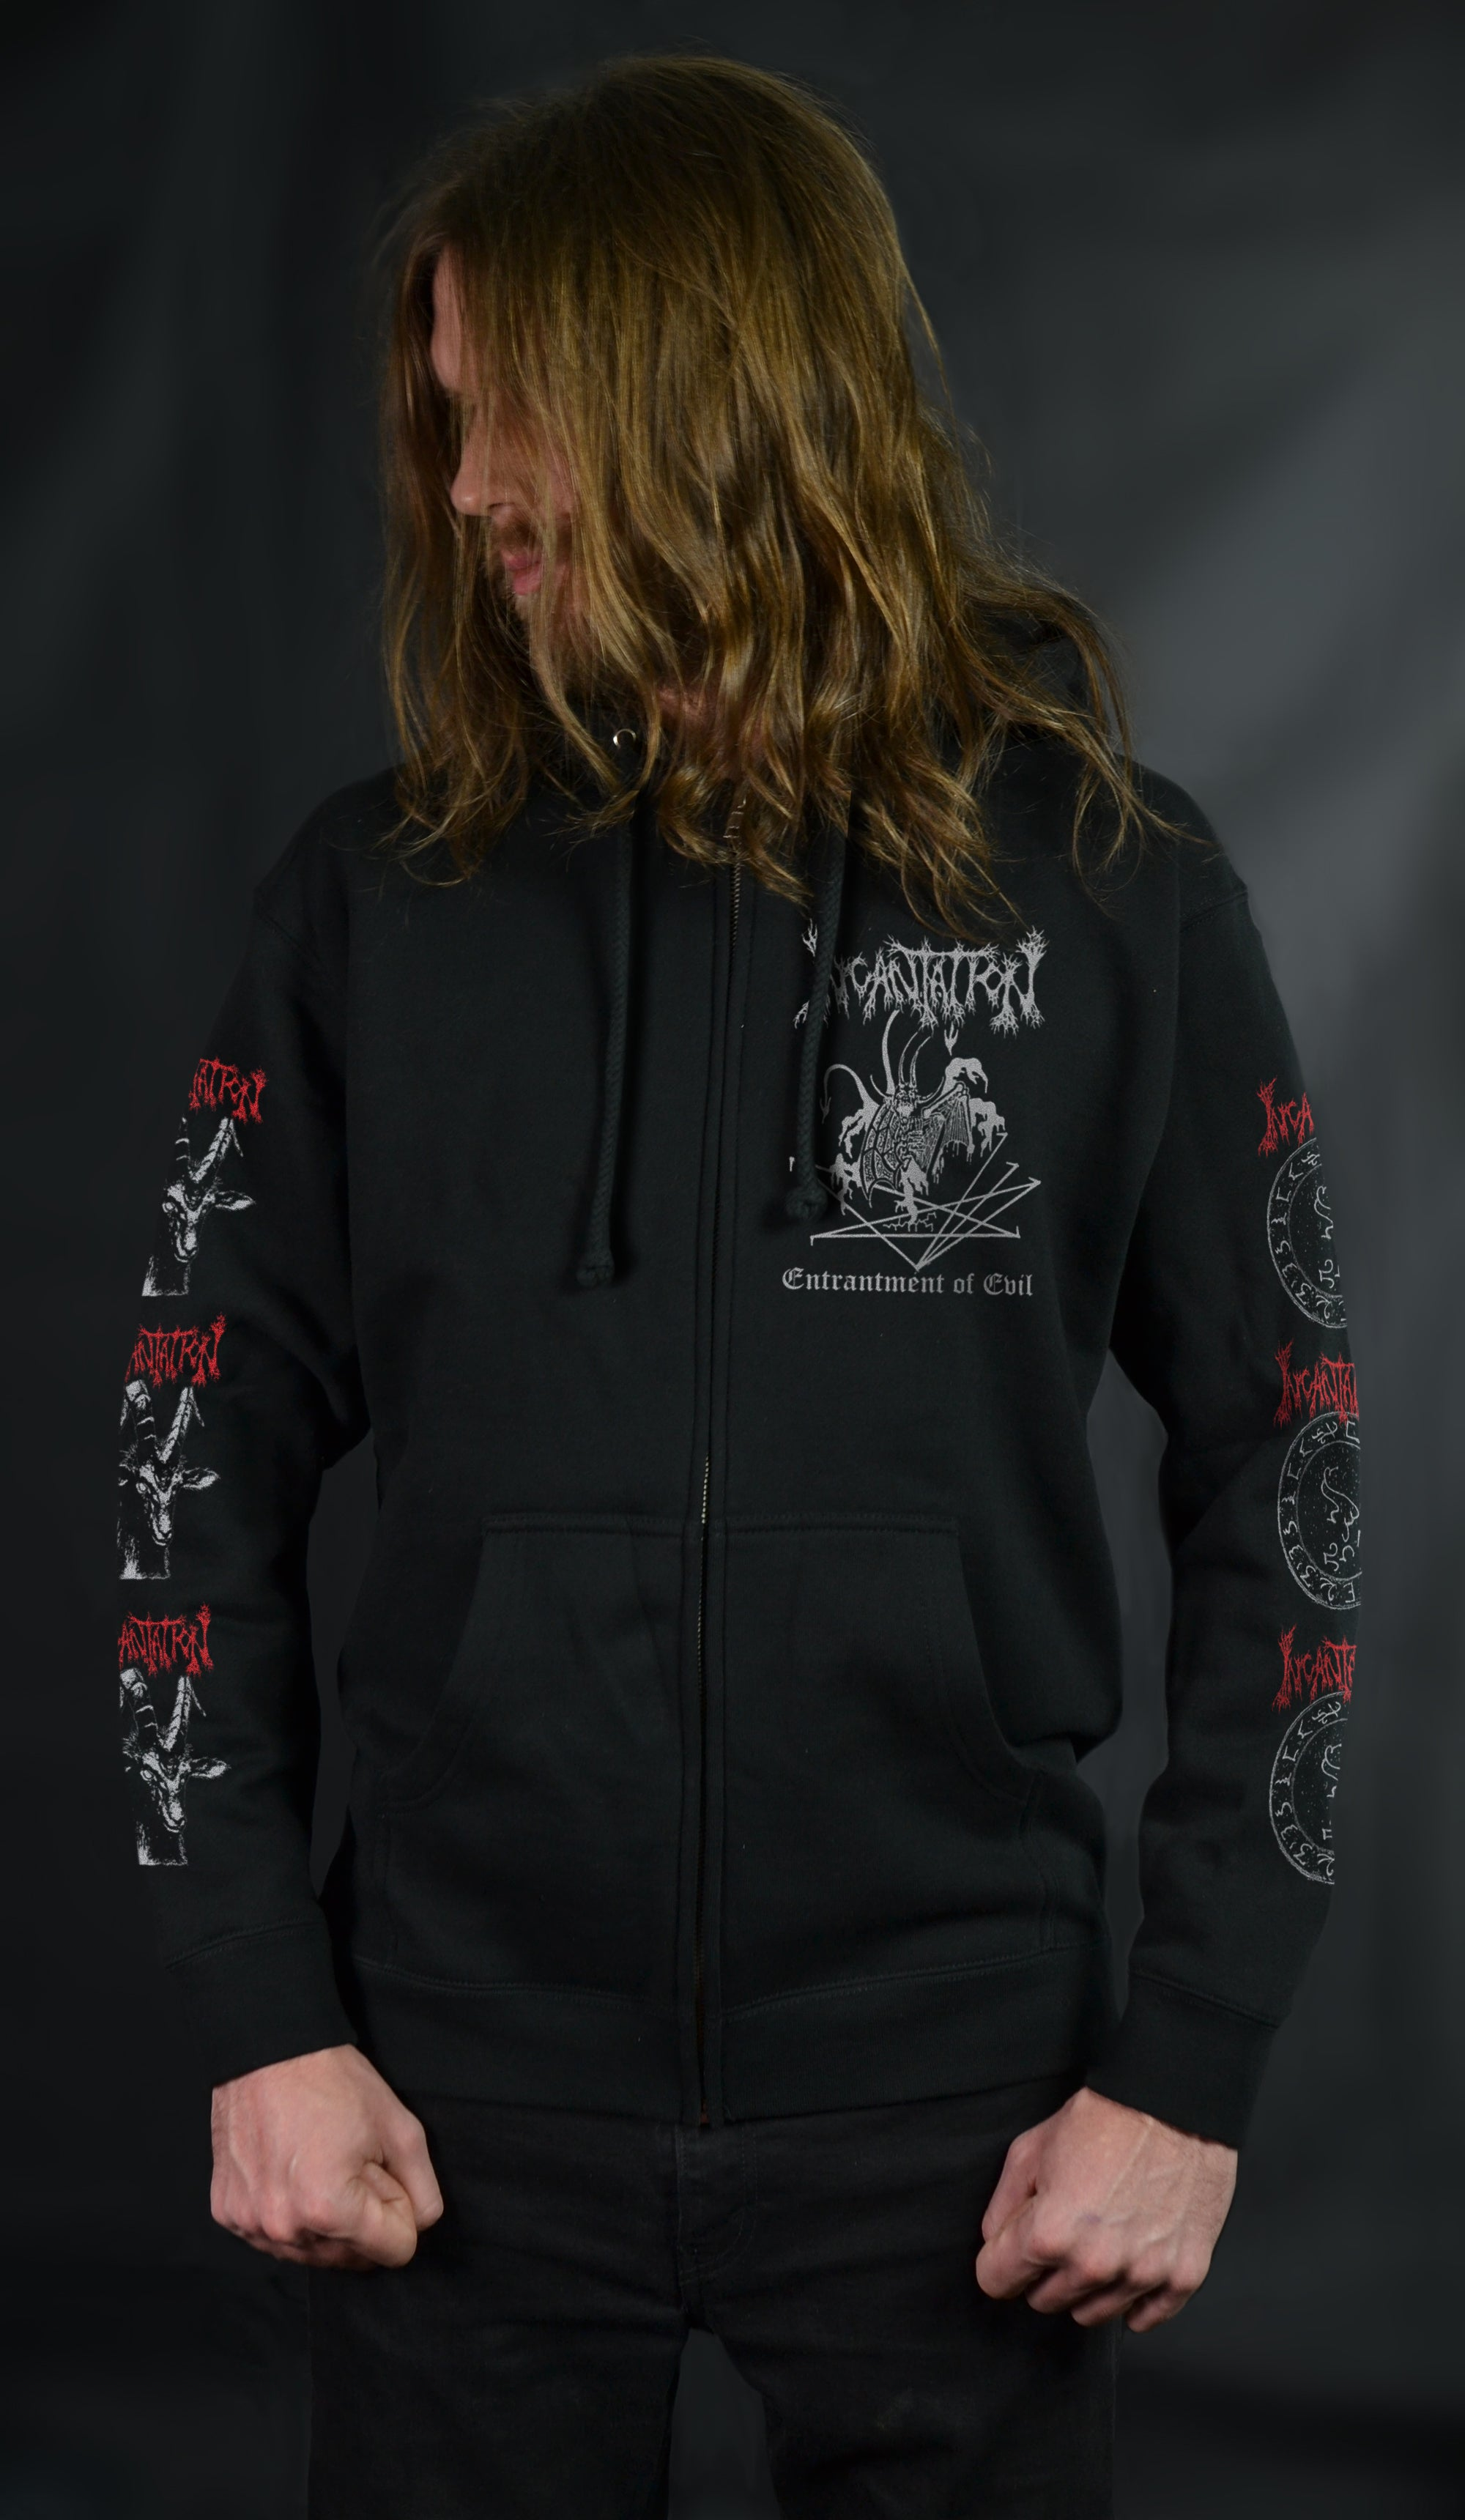 INCANTATION - Entrantment of Evil (ZIP UP HOODIE)